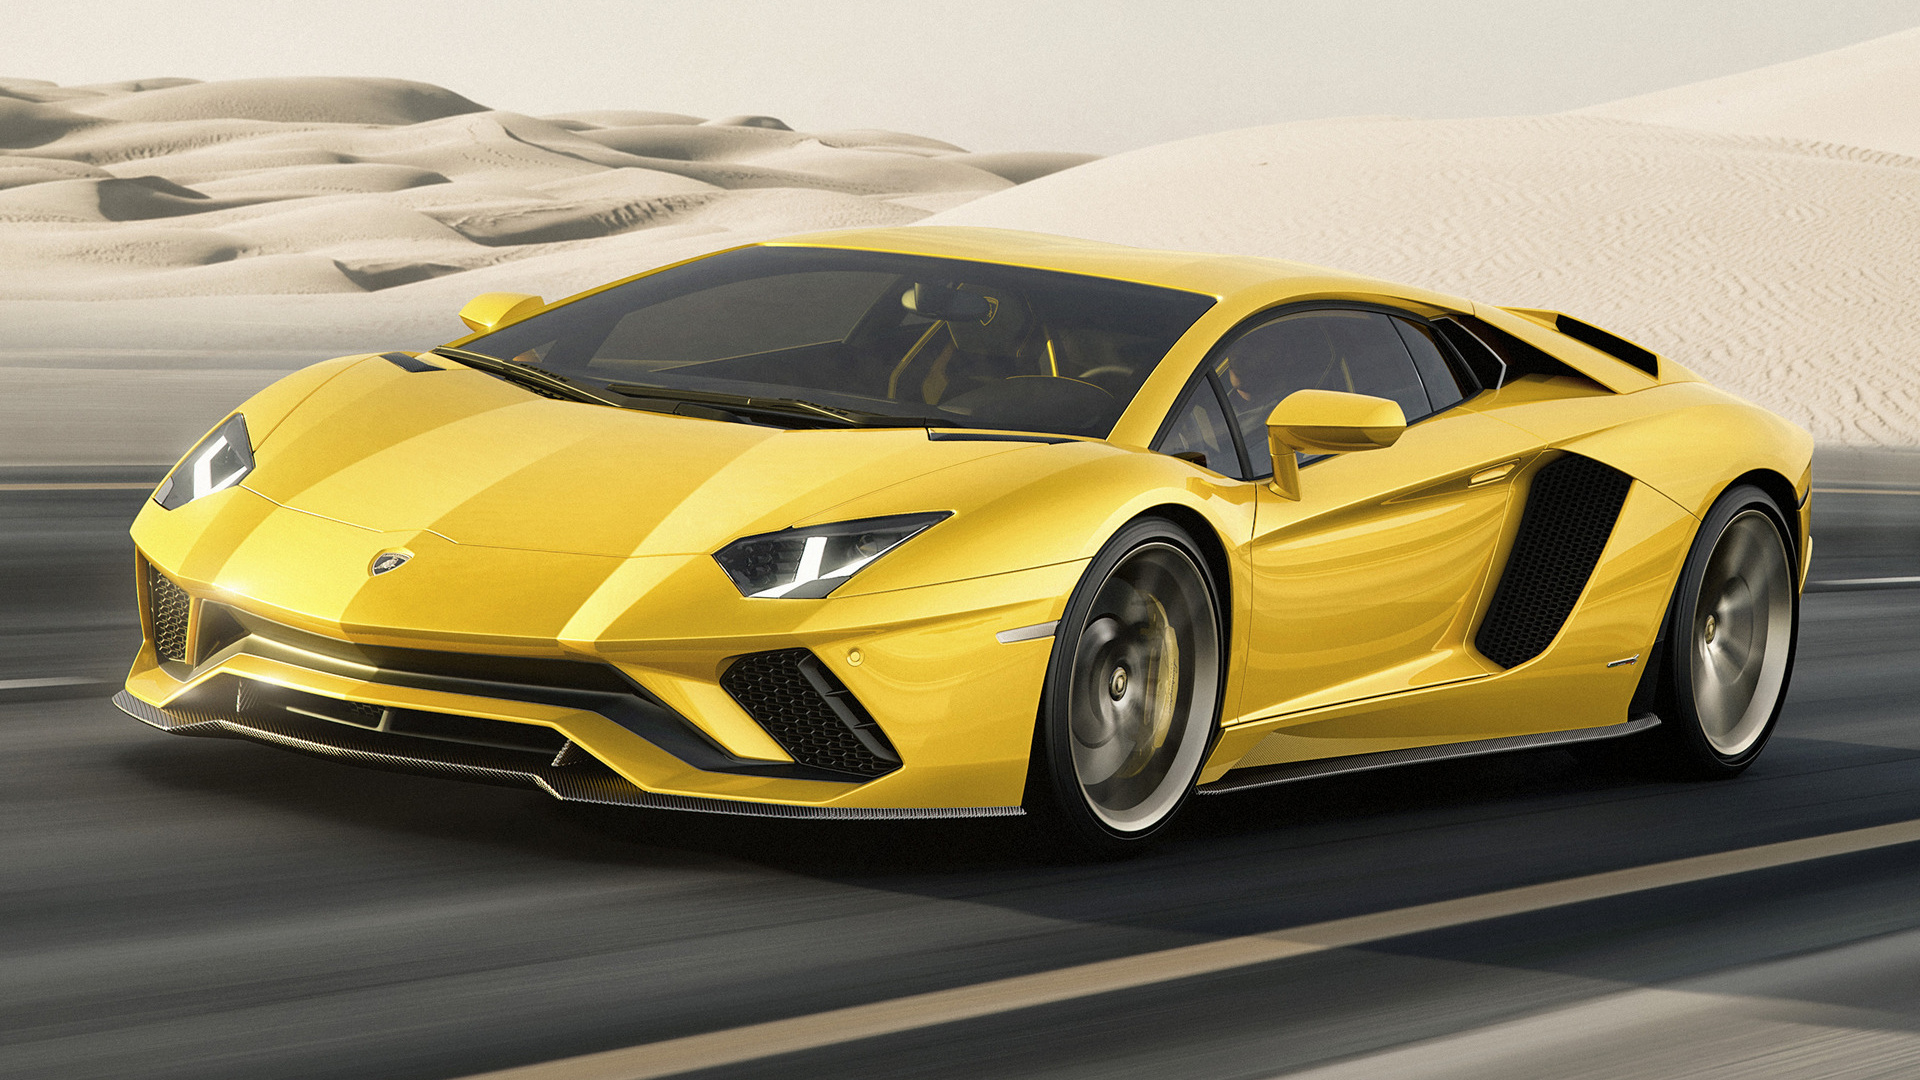 2017 Lamborghini Aventador S   Wallpapers and HD Images Car Pixel 1920x1080